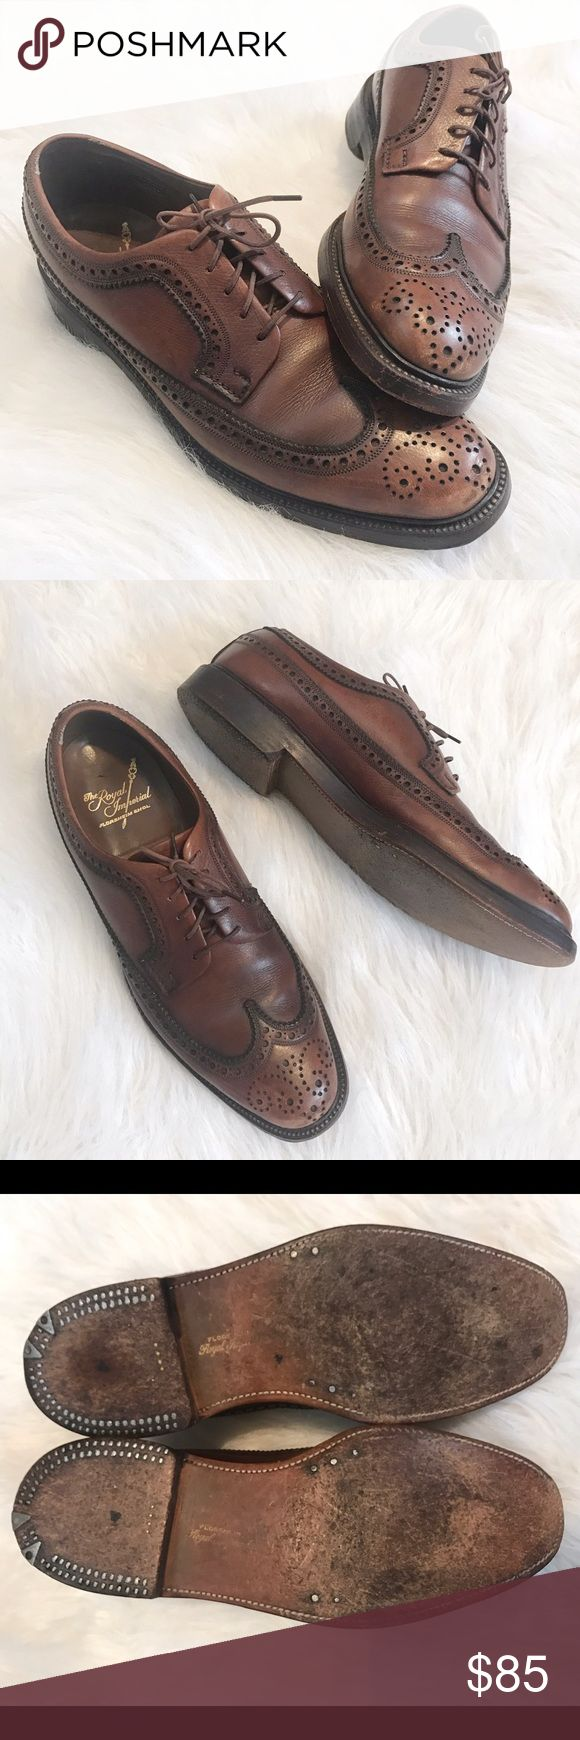 Florsheim Royal Imperial - Leather Wingtips Florsheim Royal Imperial brown leather V-cleat wingtips. In excellent used condition. Some wear in small scuffs to toe, shown in photos. Style number 97604. 5 nail. Made in the USA. Florsheim Shoes Oxfords & Derbys